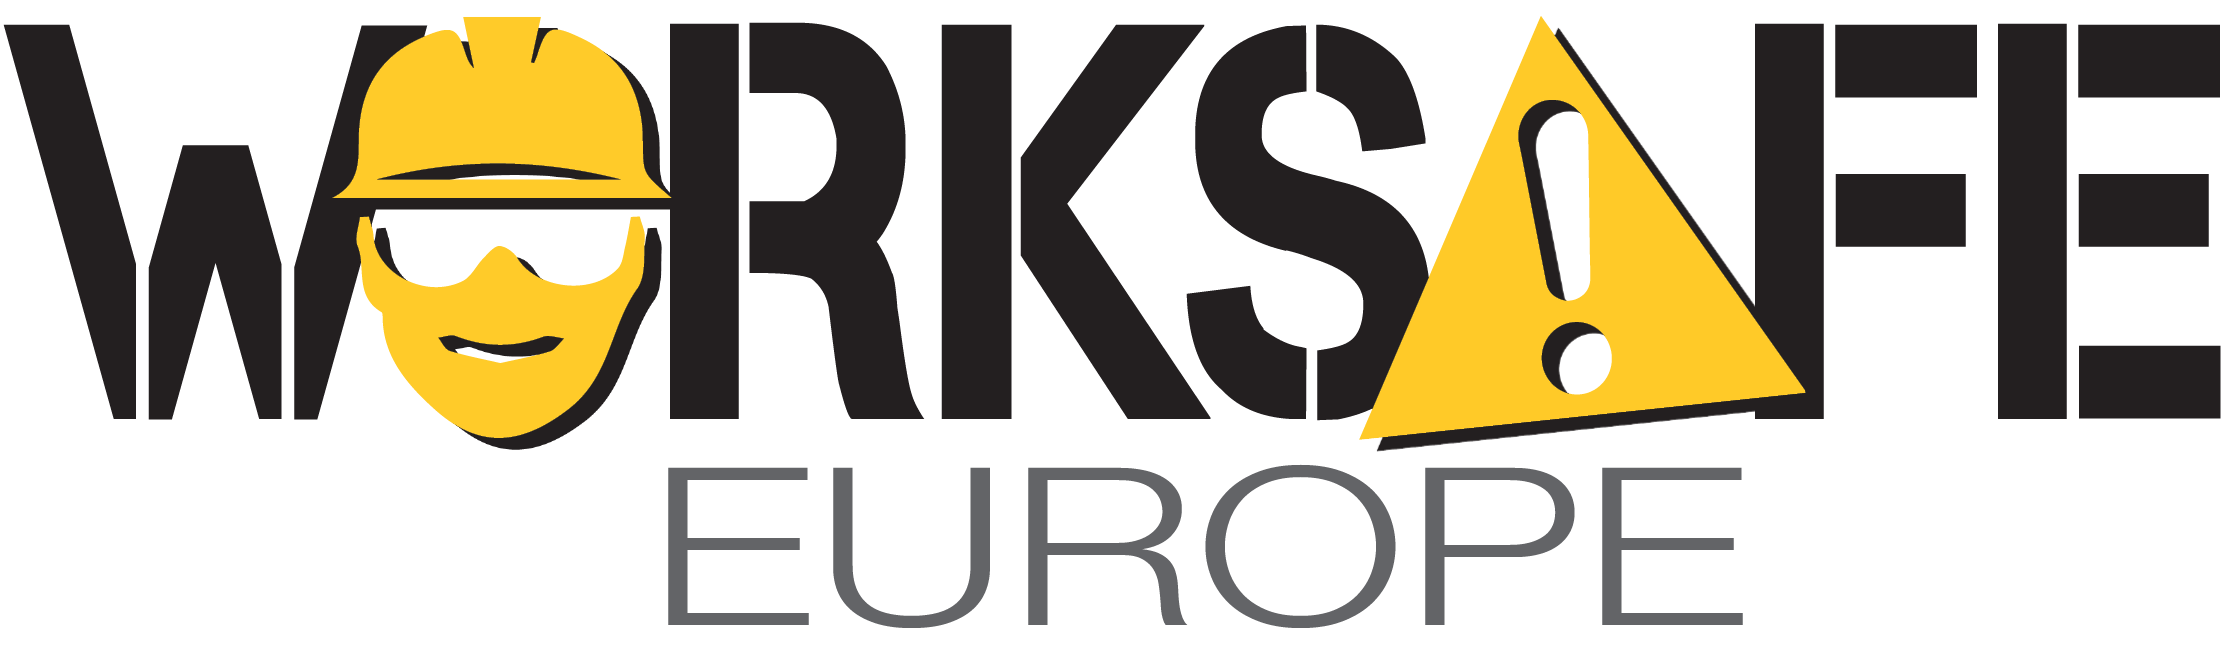 Worksafe Europe